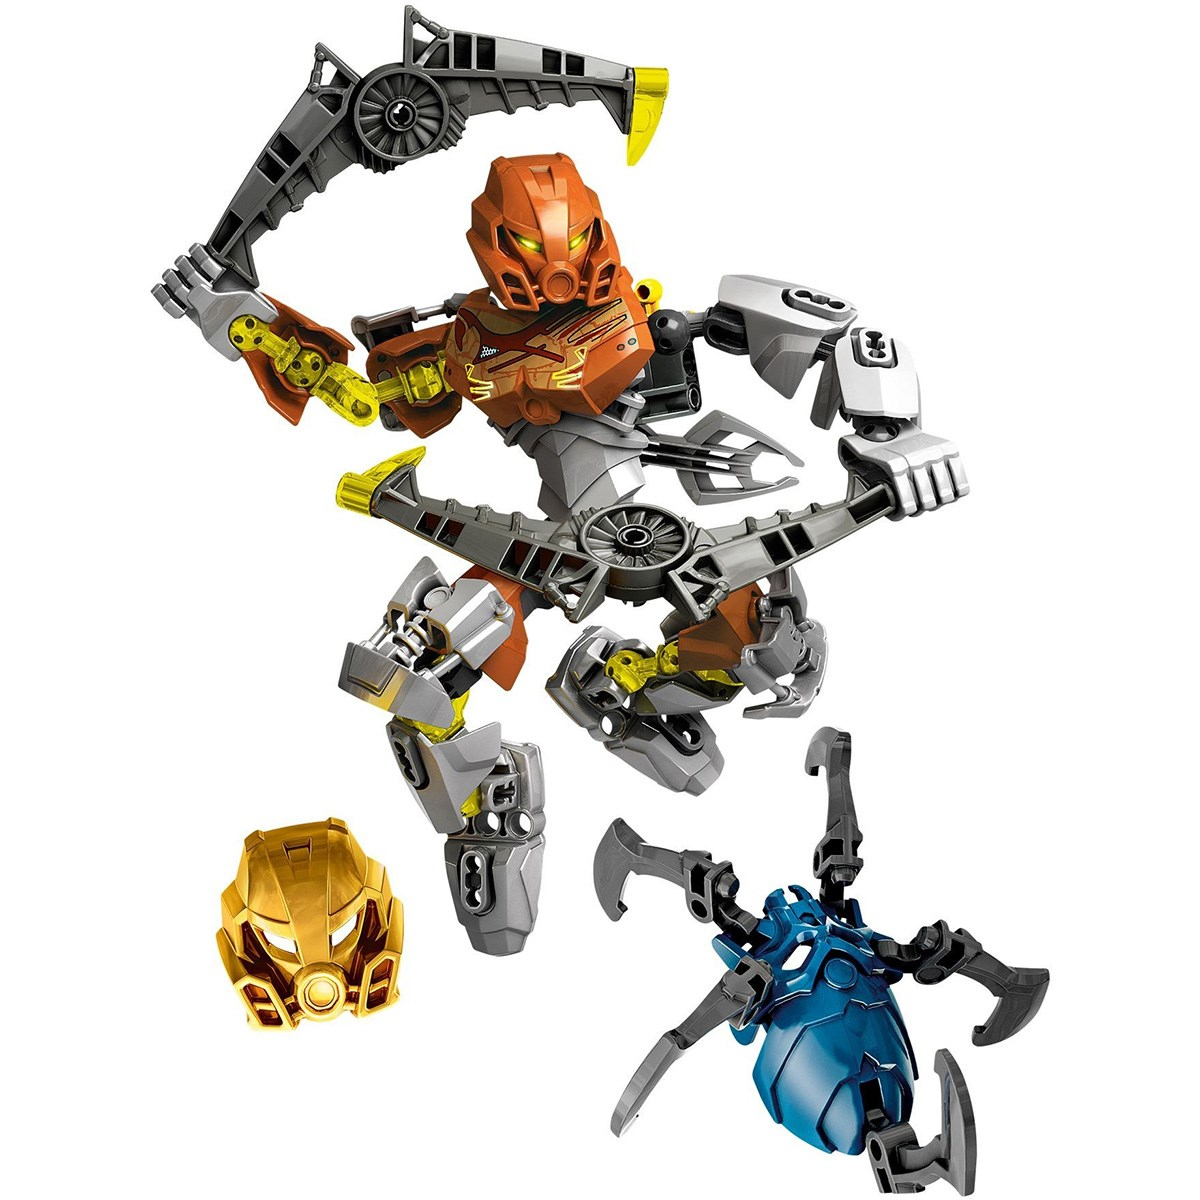 Lego Bionicle - Than da Pohatu 70785